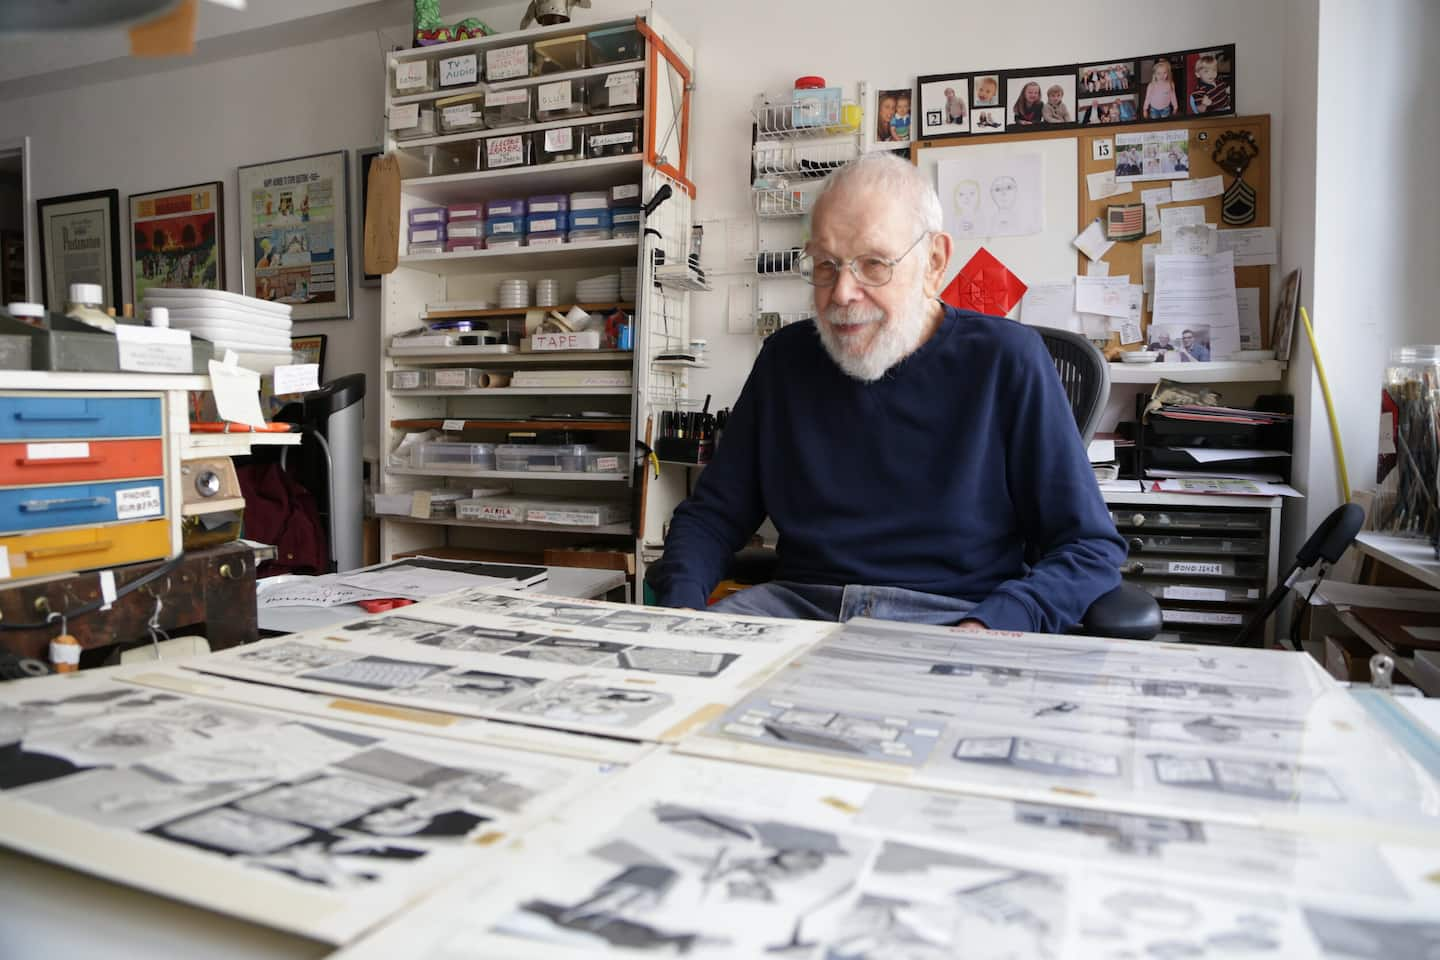 Al Jaffee turns 100, and Mad magazine salutes its legendary artist with a birthday tribute